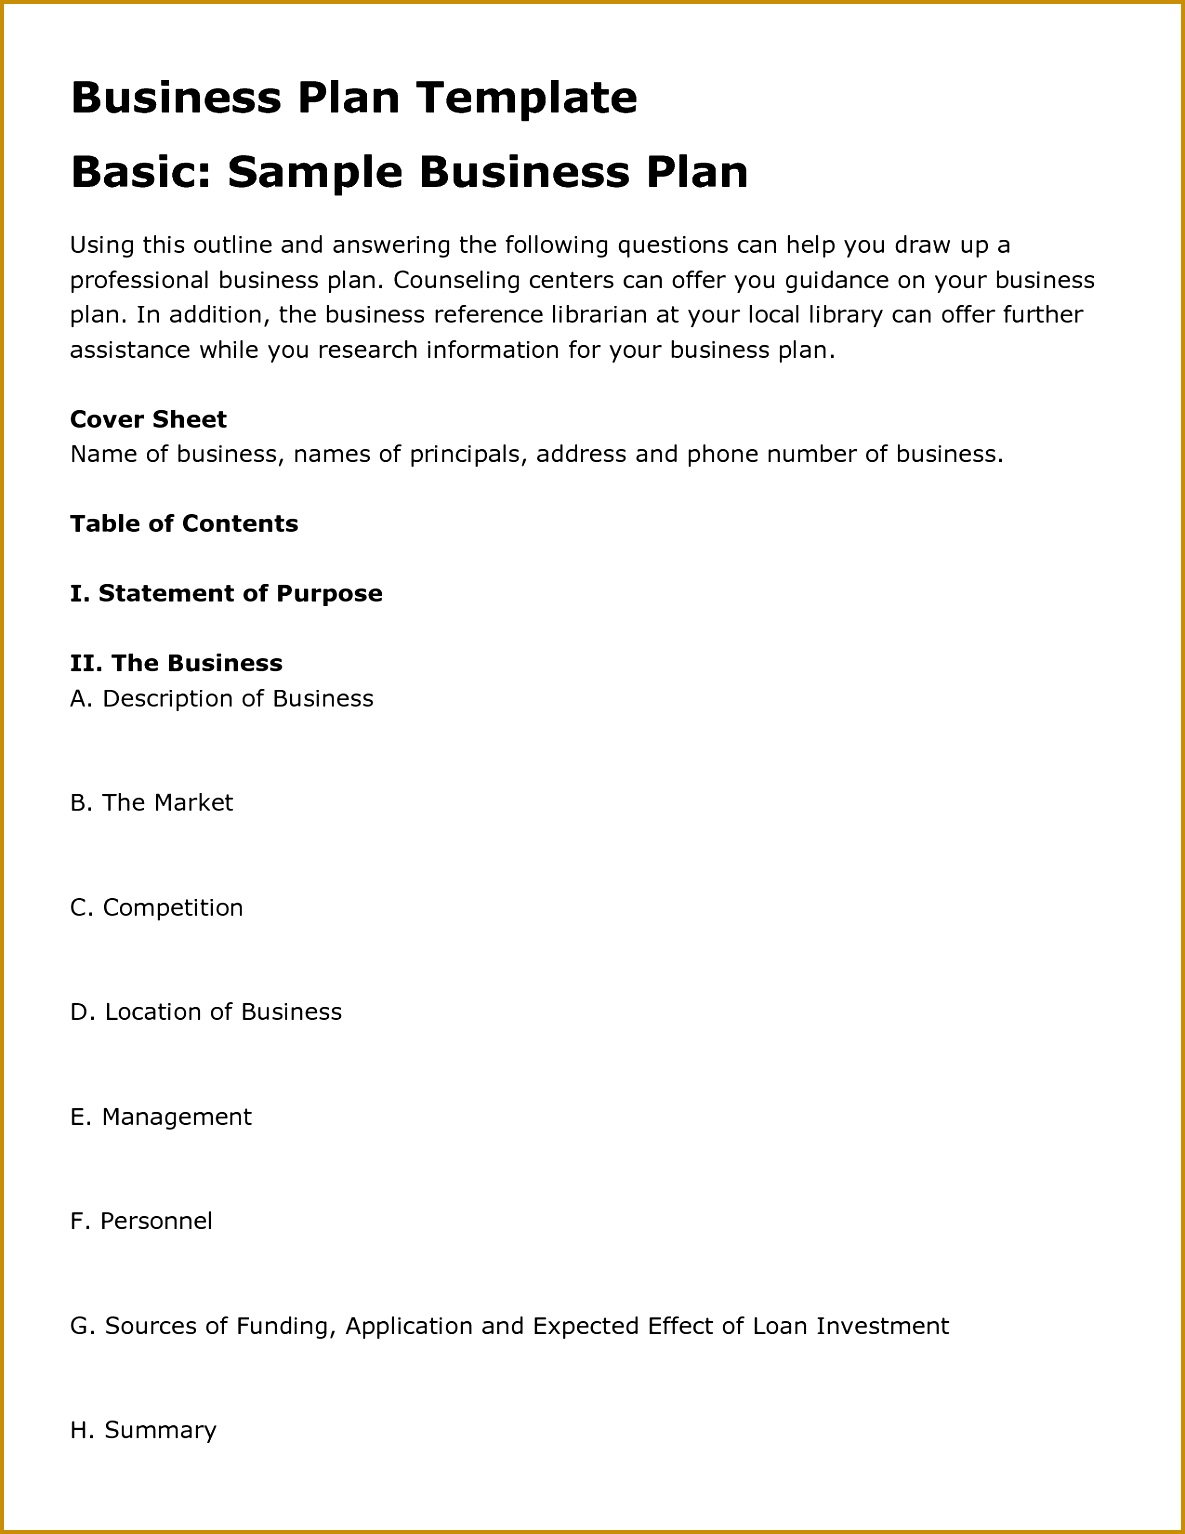 restaurant business plan pdf free sample daycare business plan pdf sample business plan for restaurant 15341185